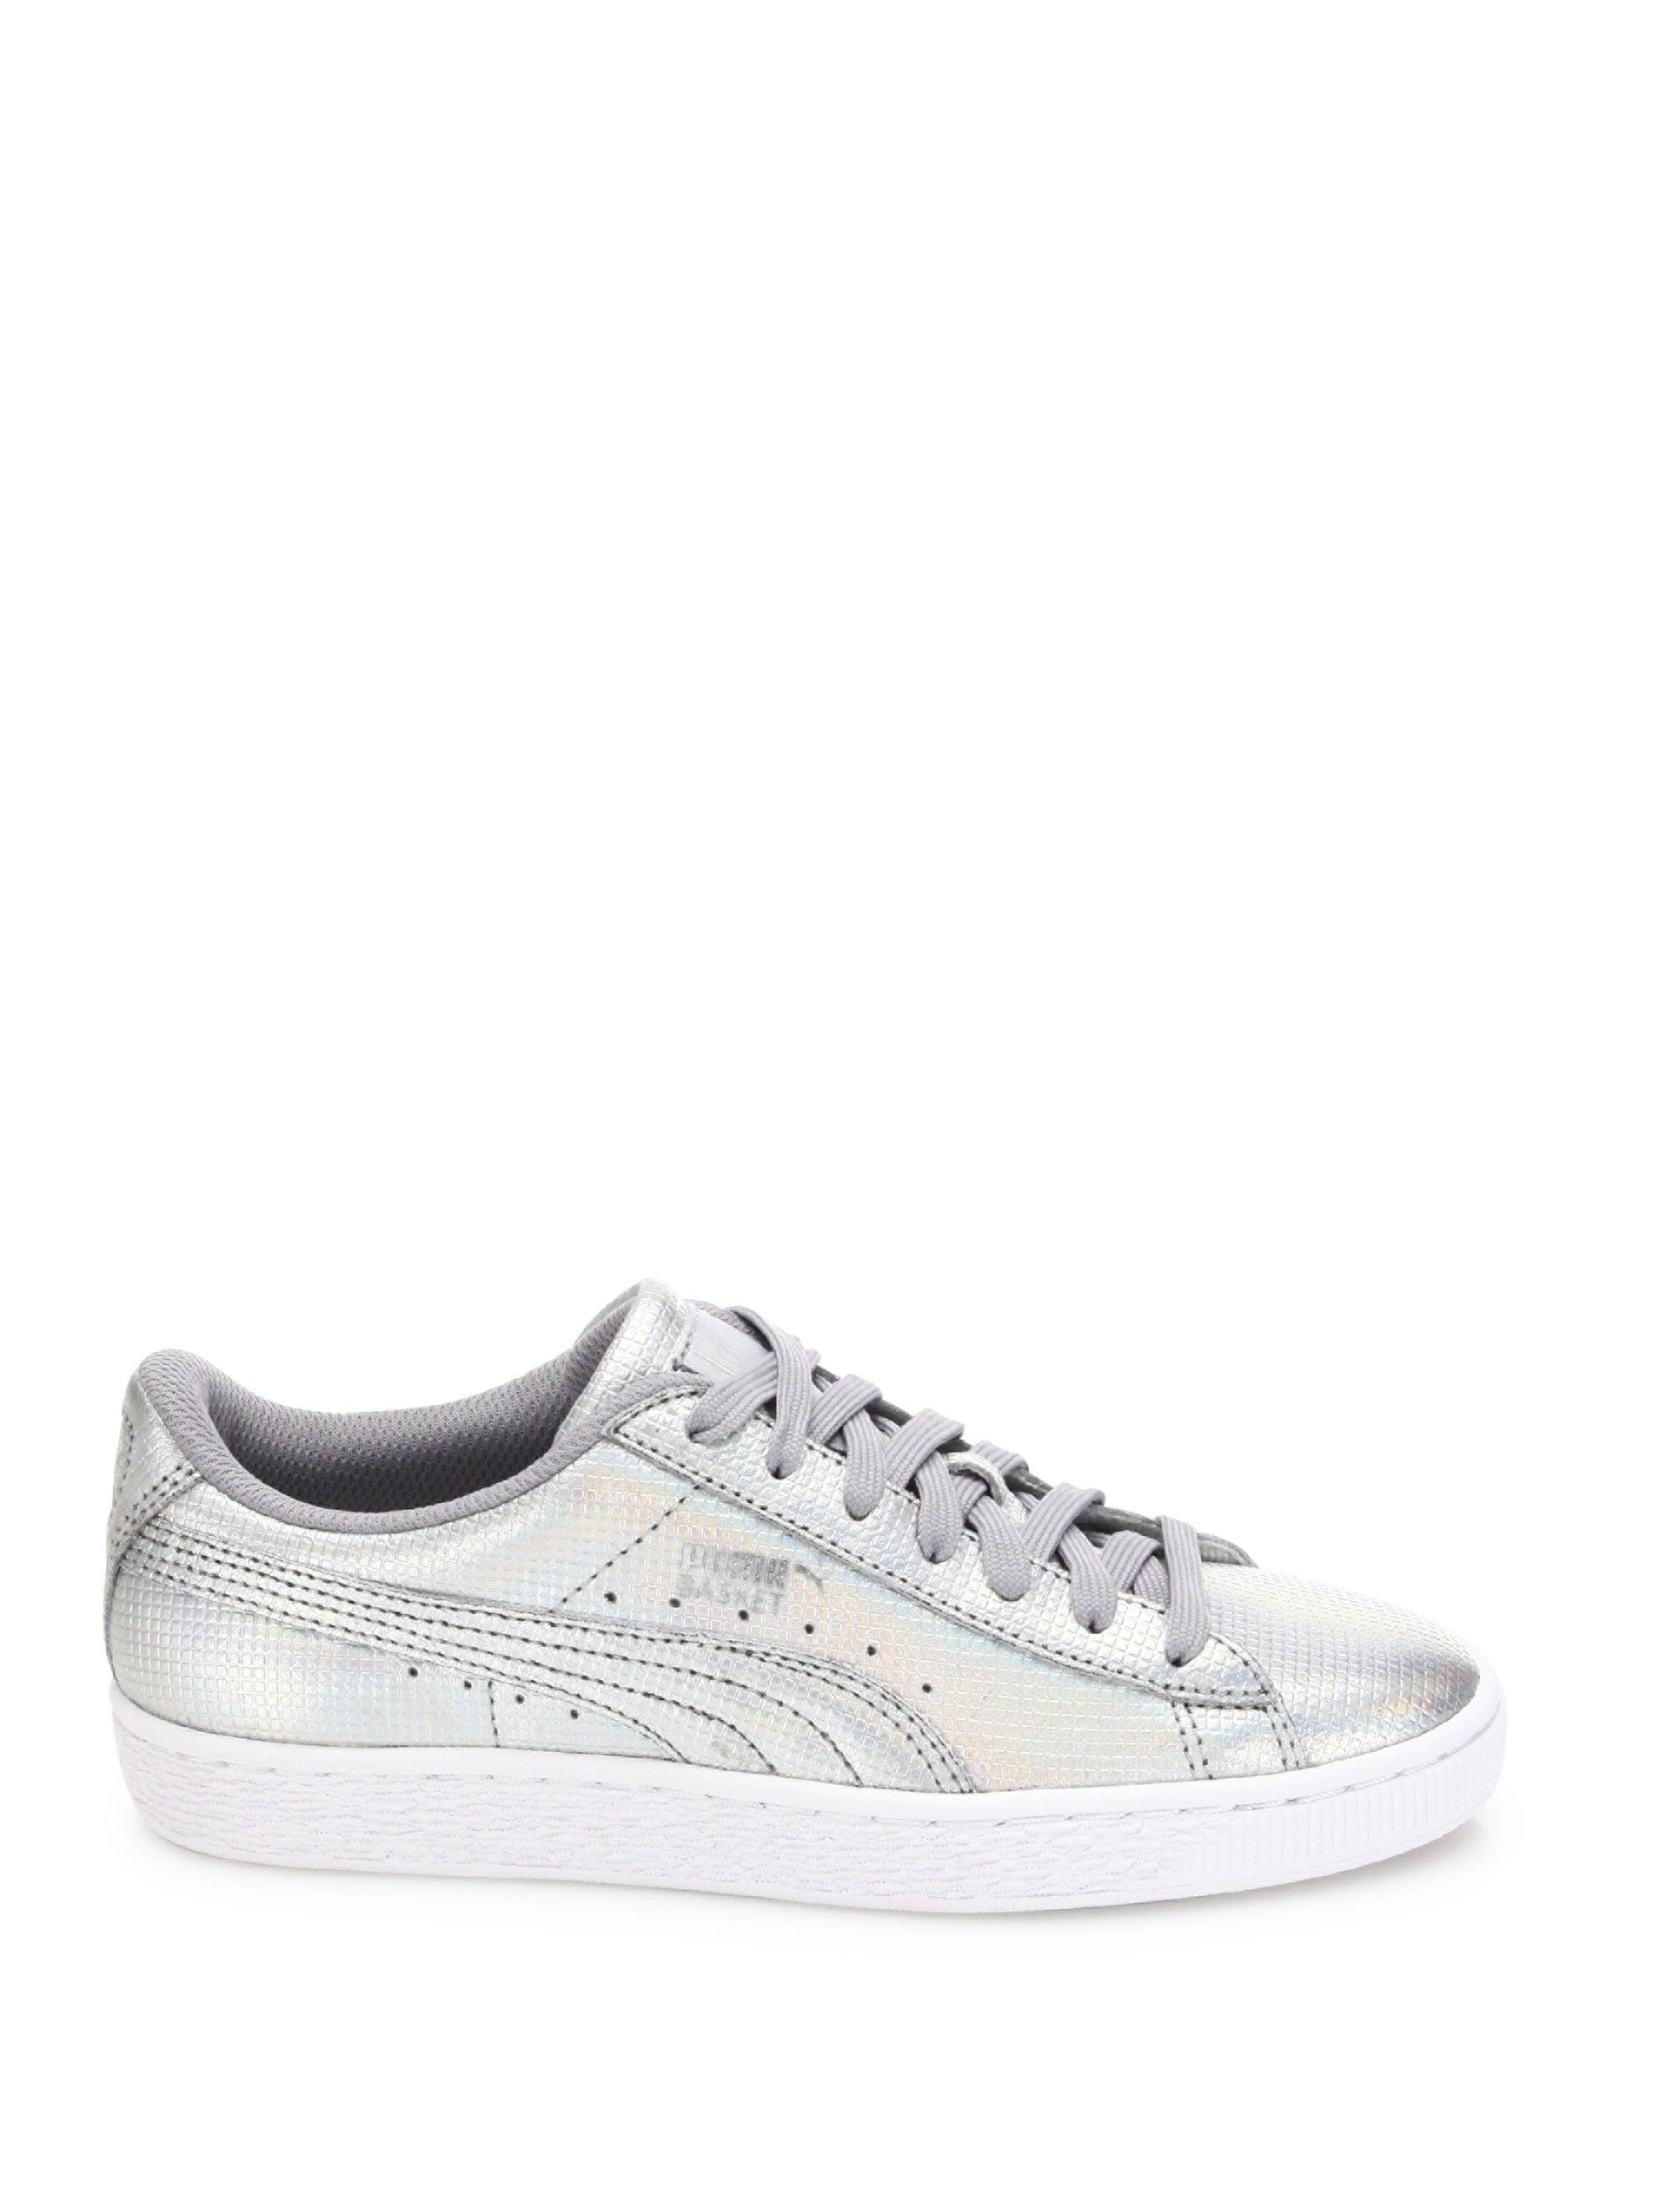 87a82840c1a Lyst - PUMA Basket Holographic Leather Sneakers in Metallic